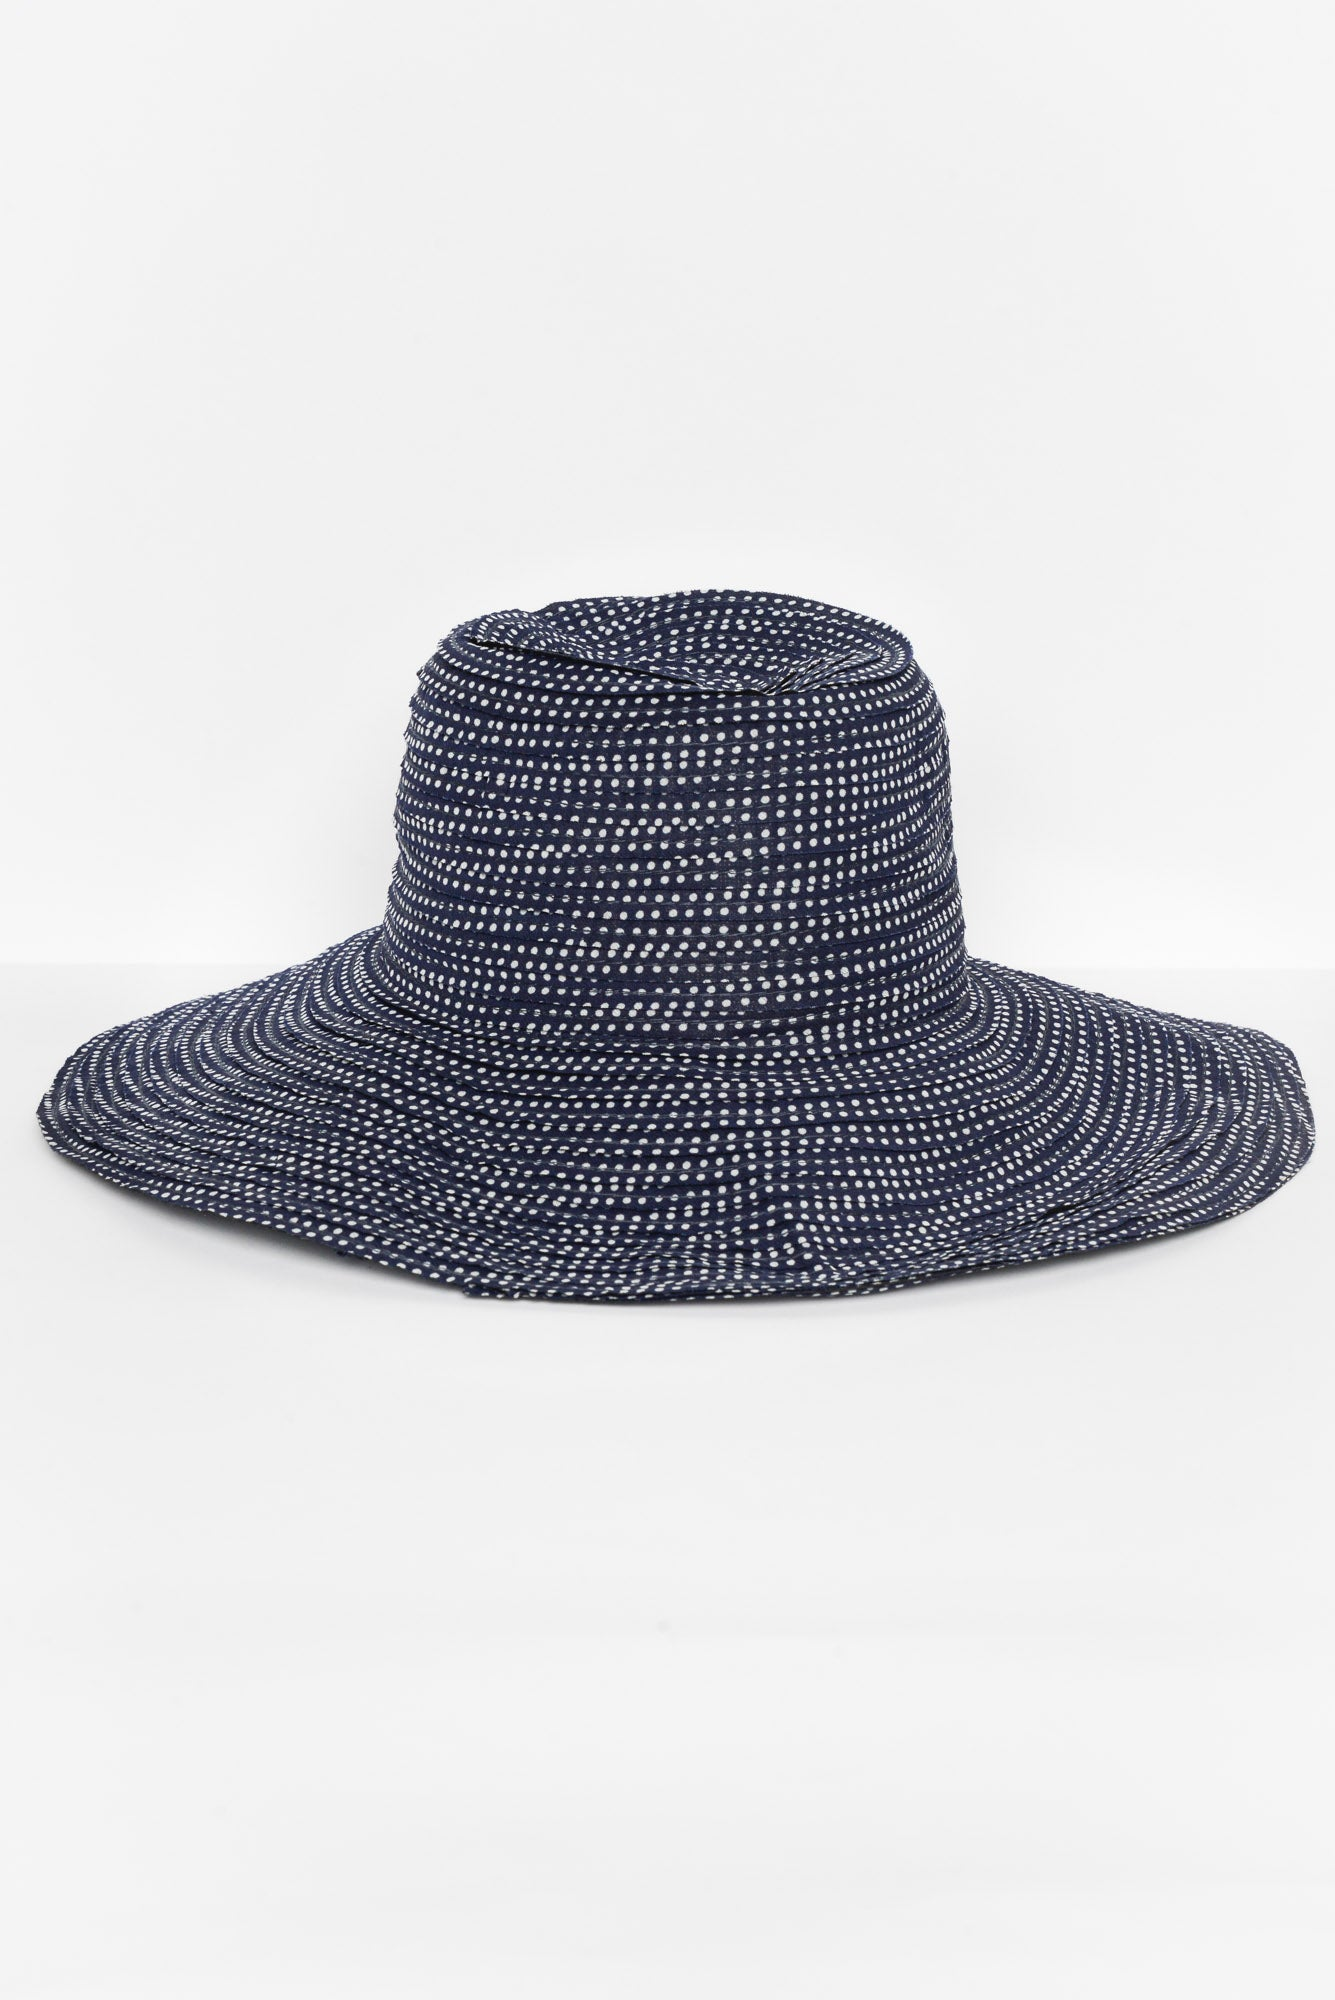 Dially Navy Spotty Hat - Blue Bungalow